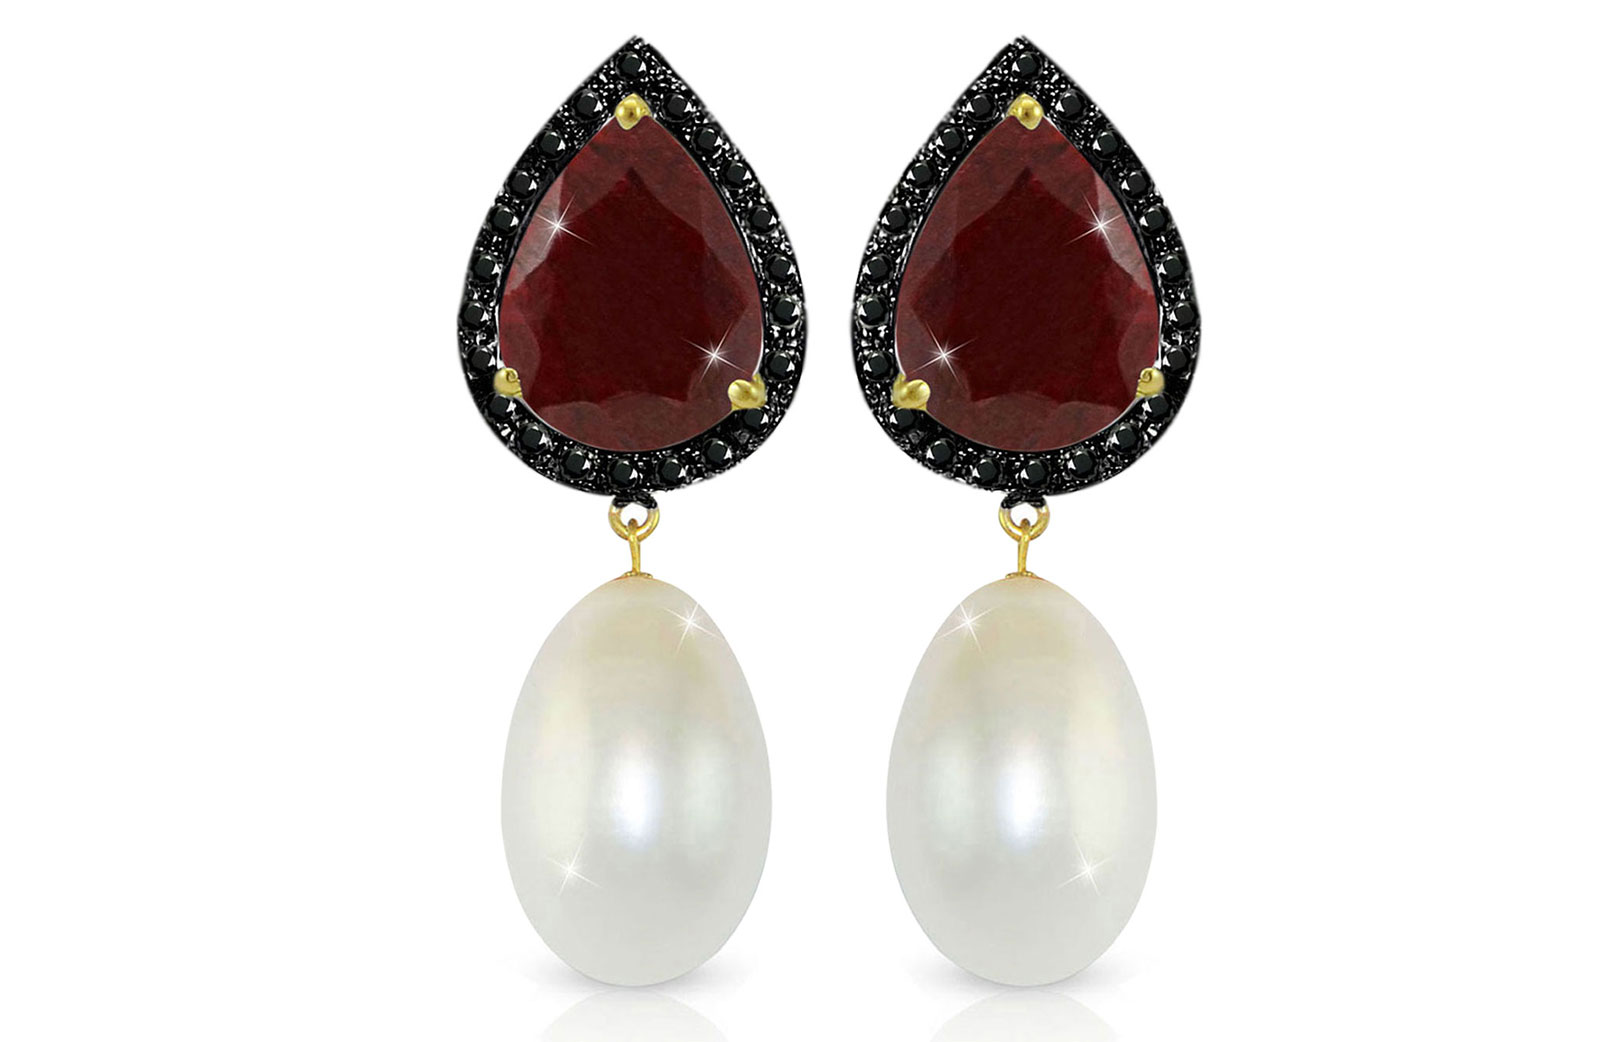 Vera Perla 18K Gold 0.24ct Black Diamonds, Ruby and 13mm White Pearl Earrings